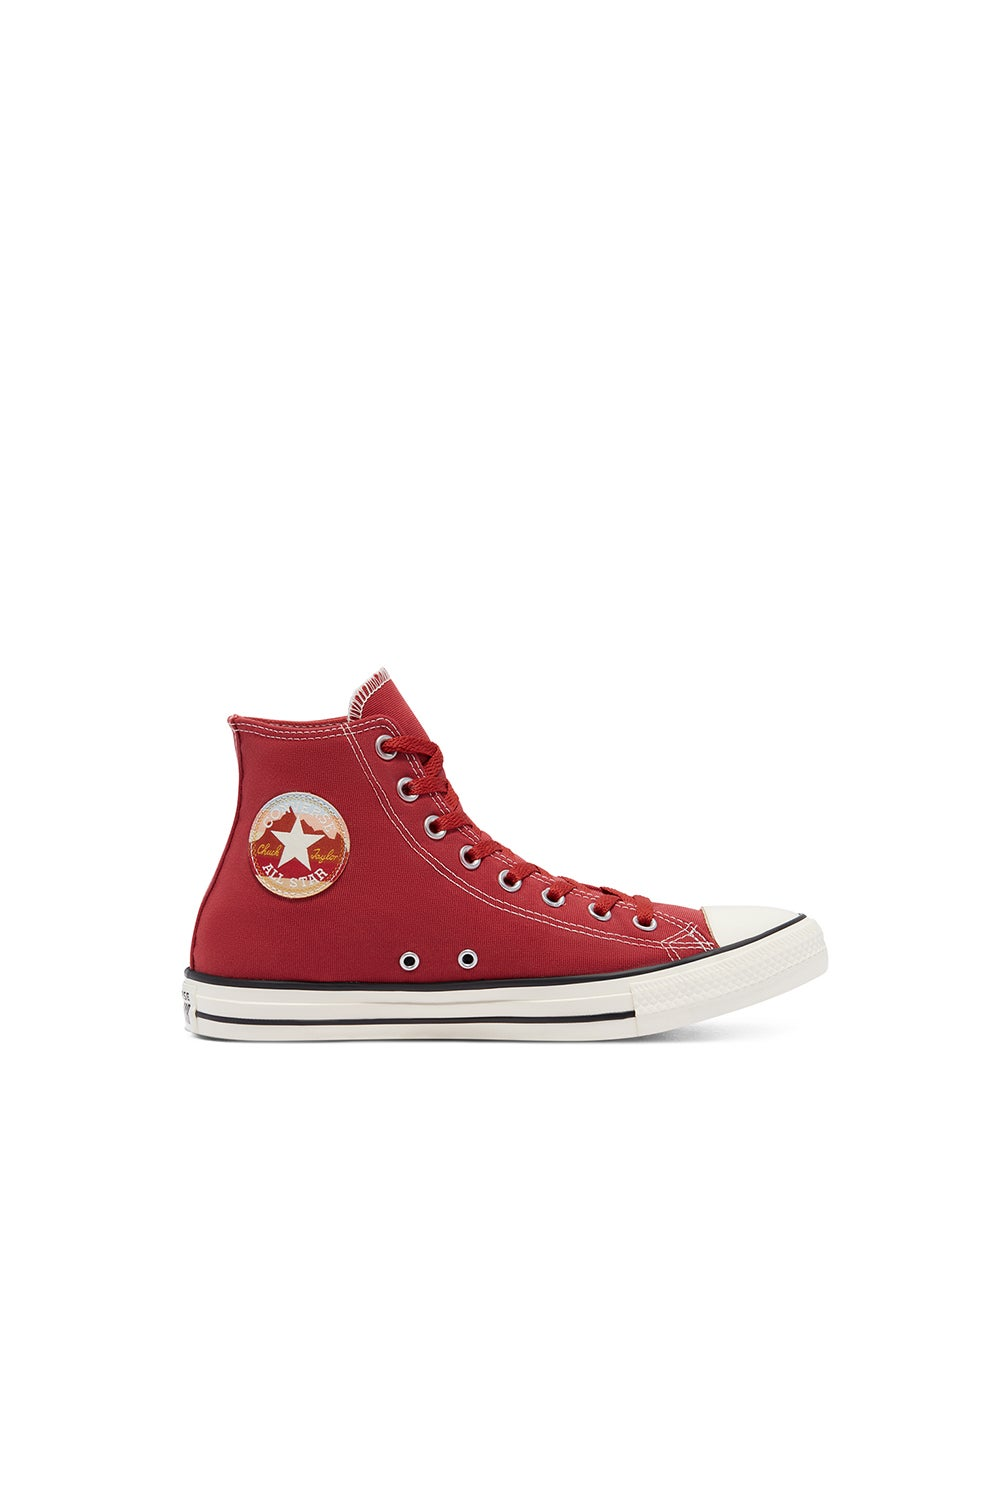 Converse Chuck Taylor National Parks Patch High Top Claret Red